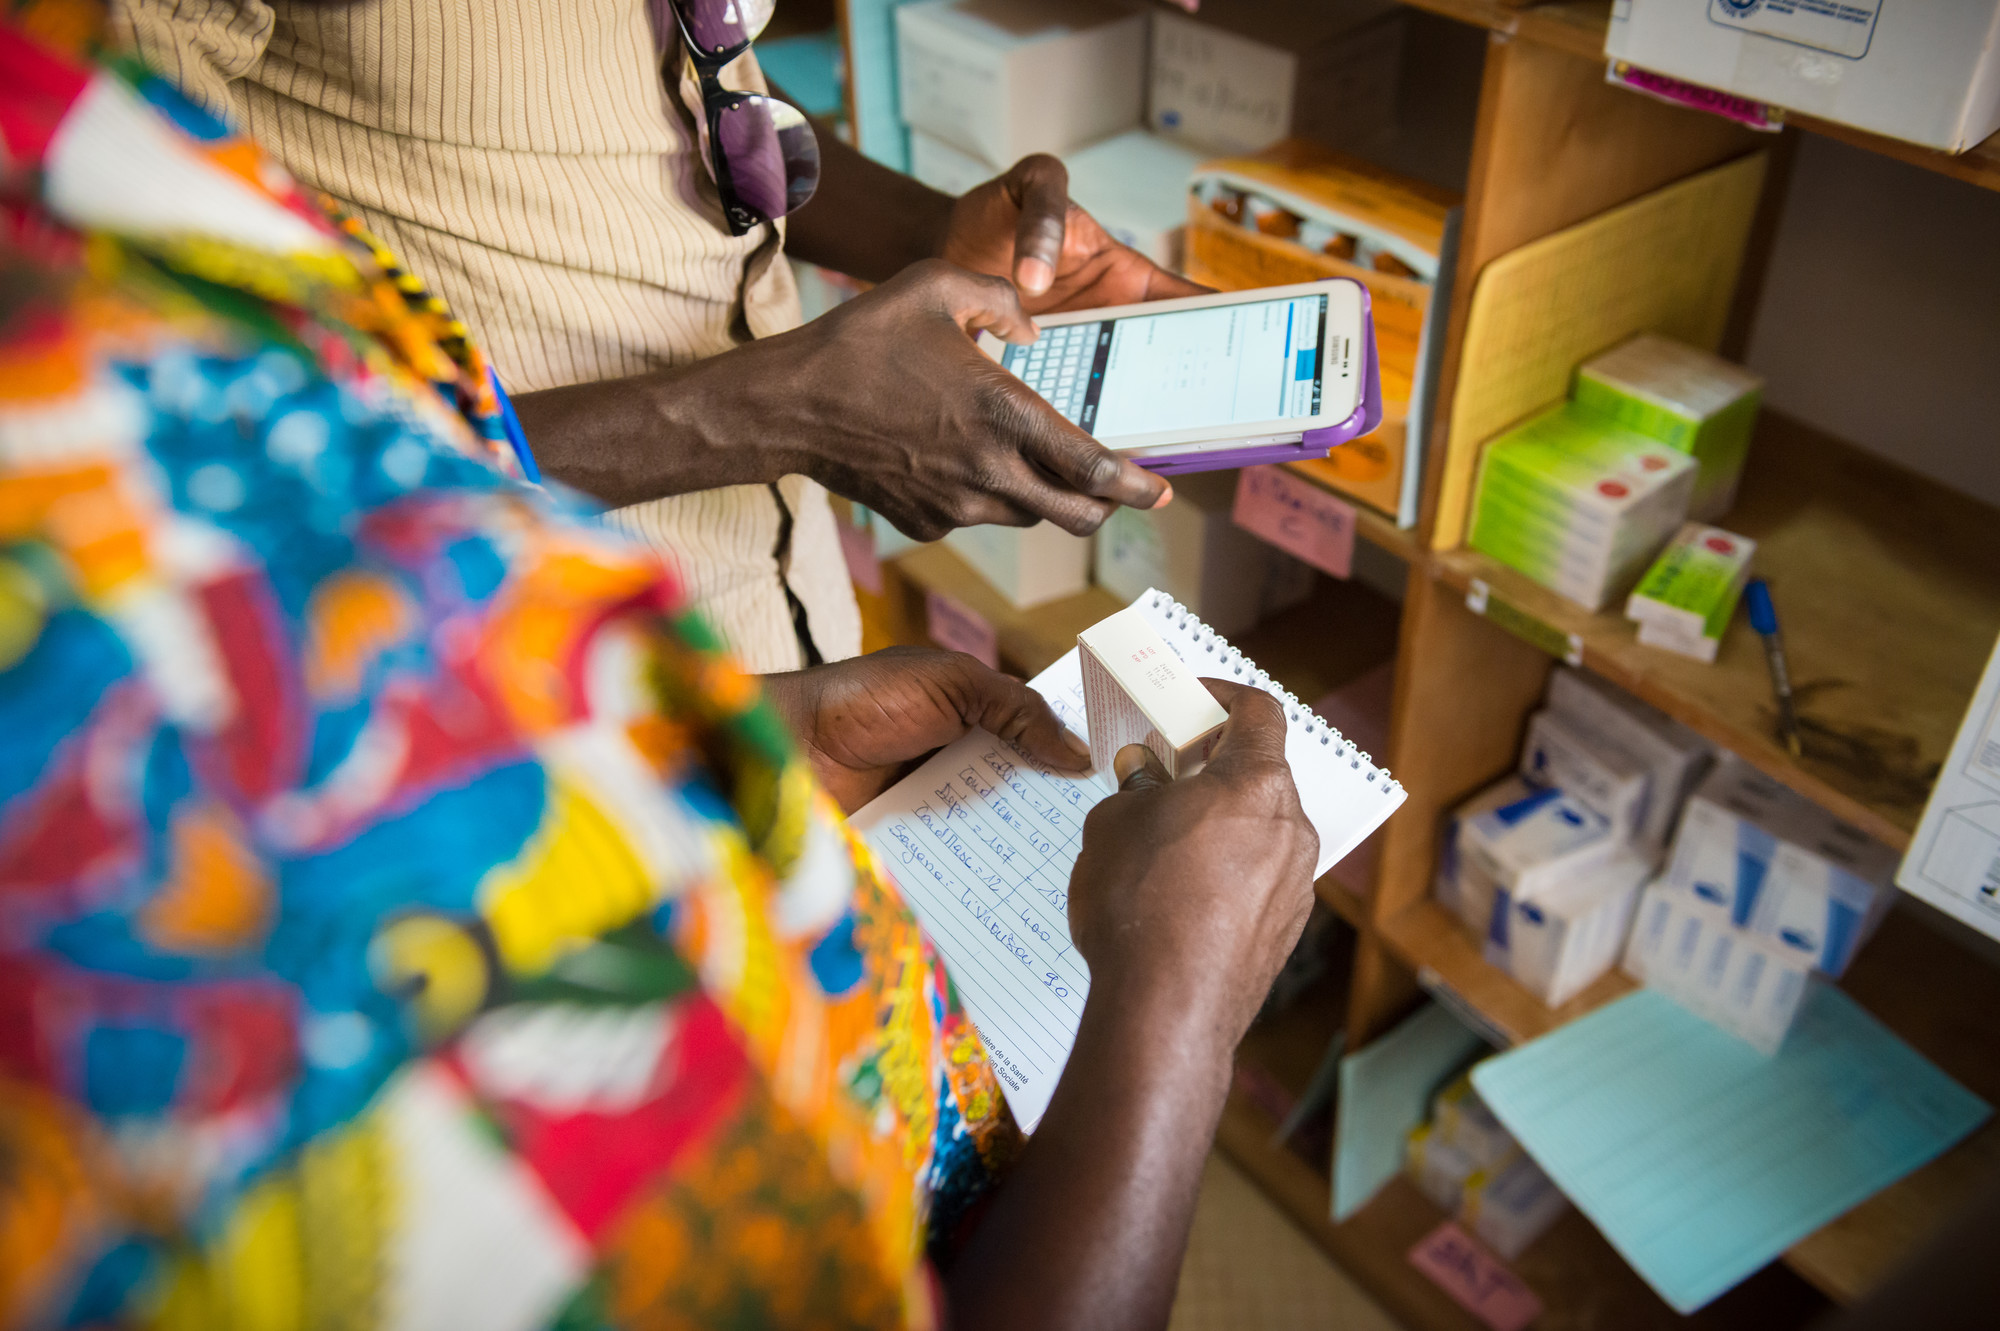 Smartphones have revolutionized the way health workers do business. Photo by Clement Tardif for IntraHealth International.